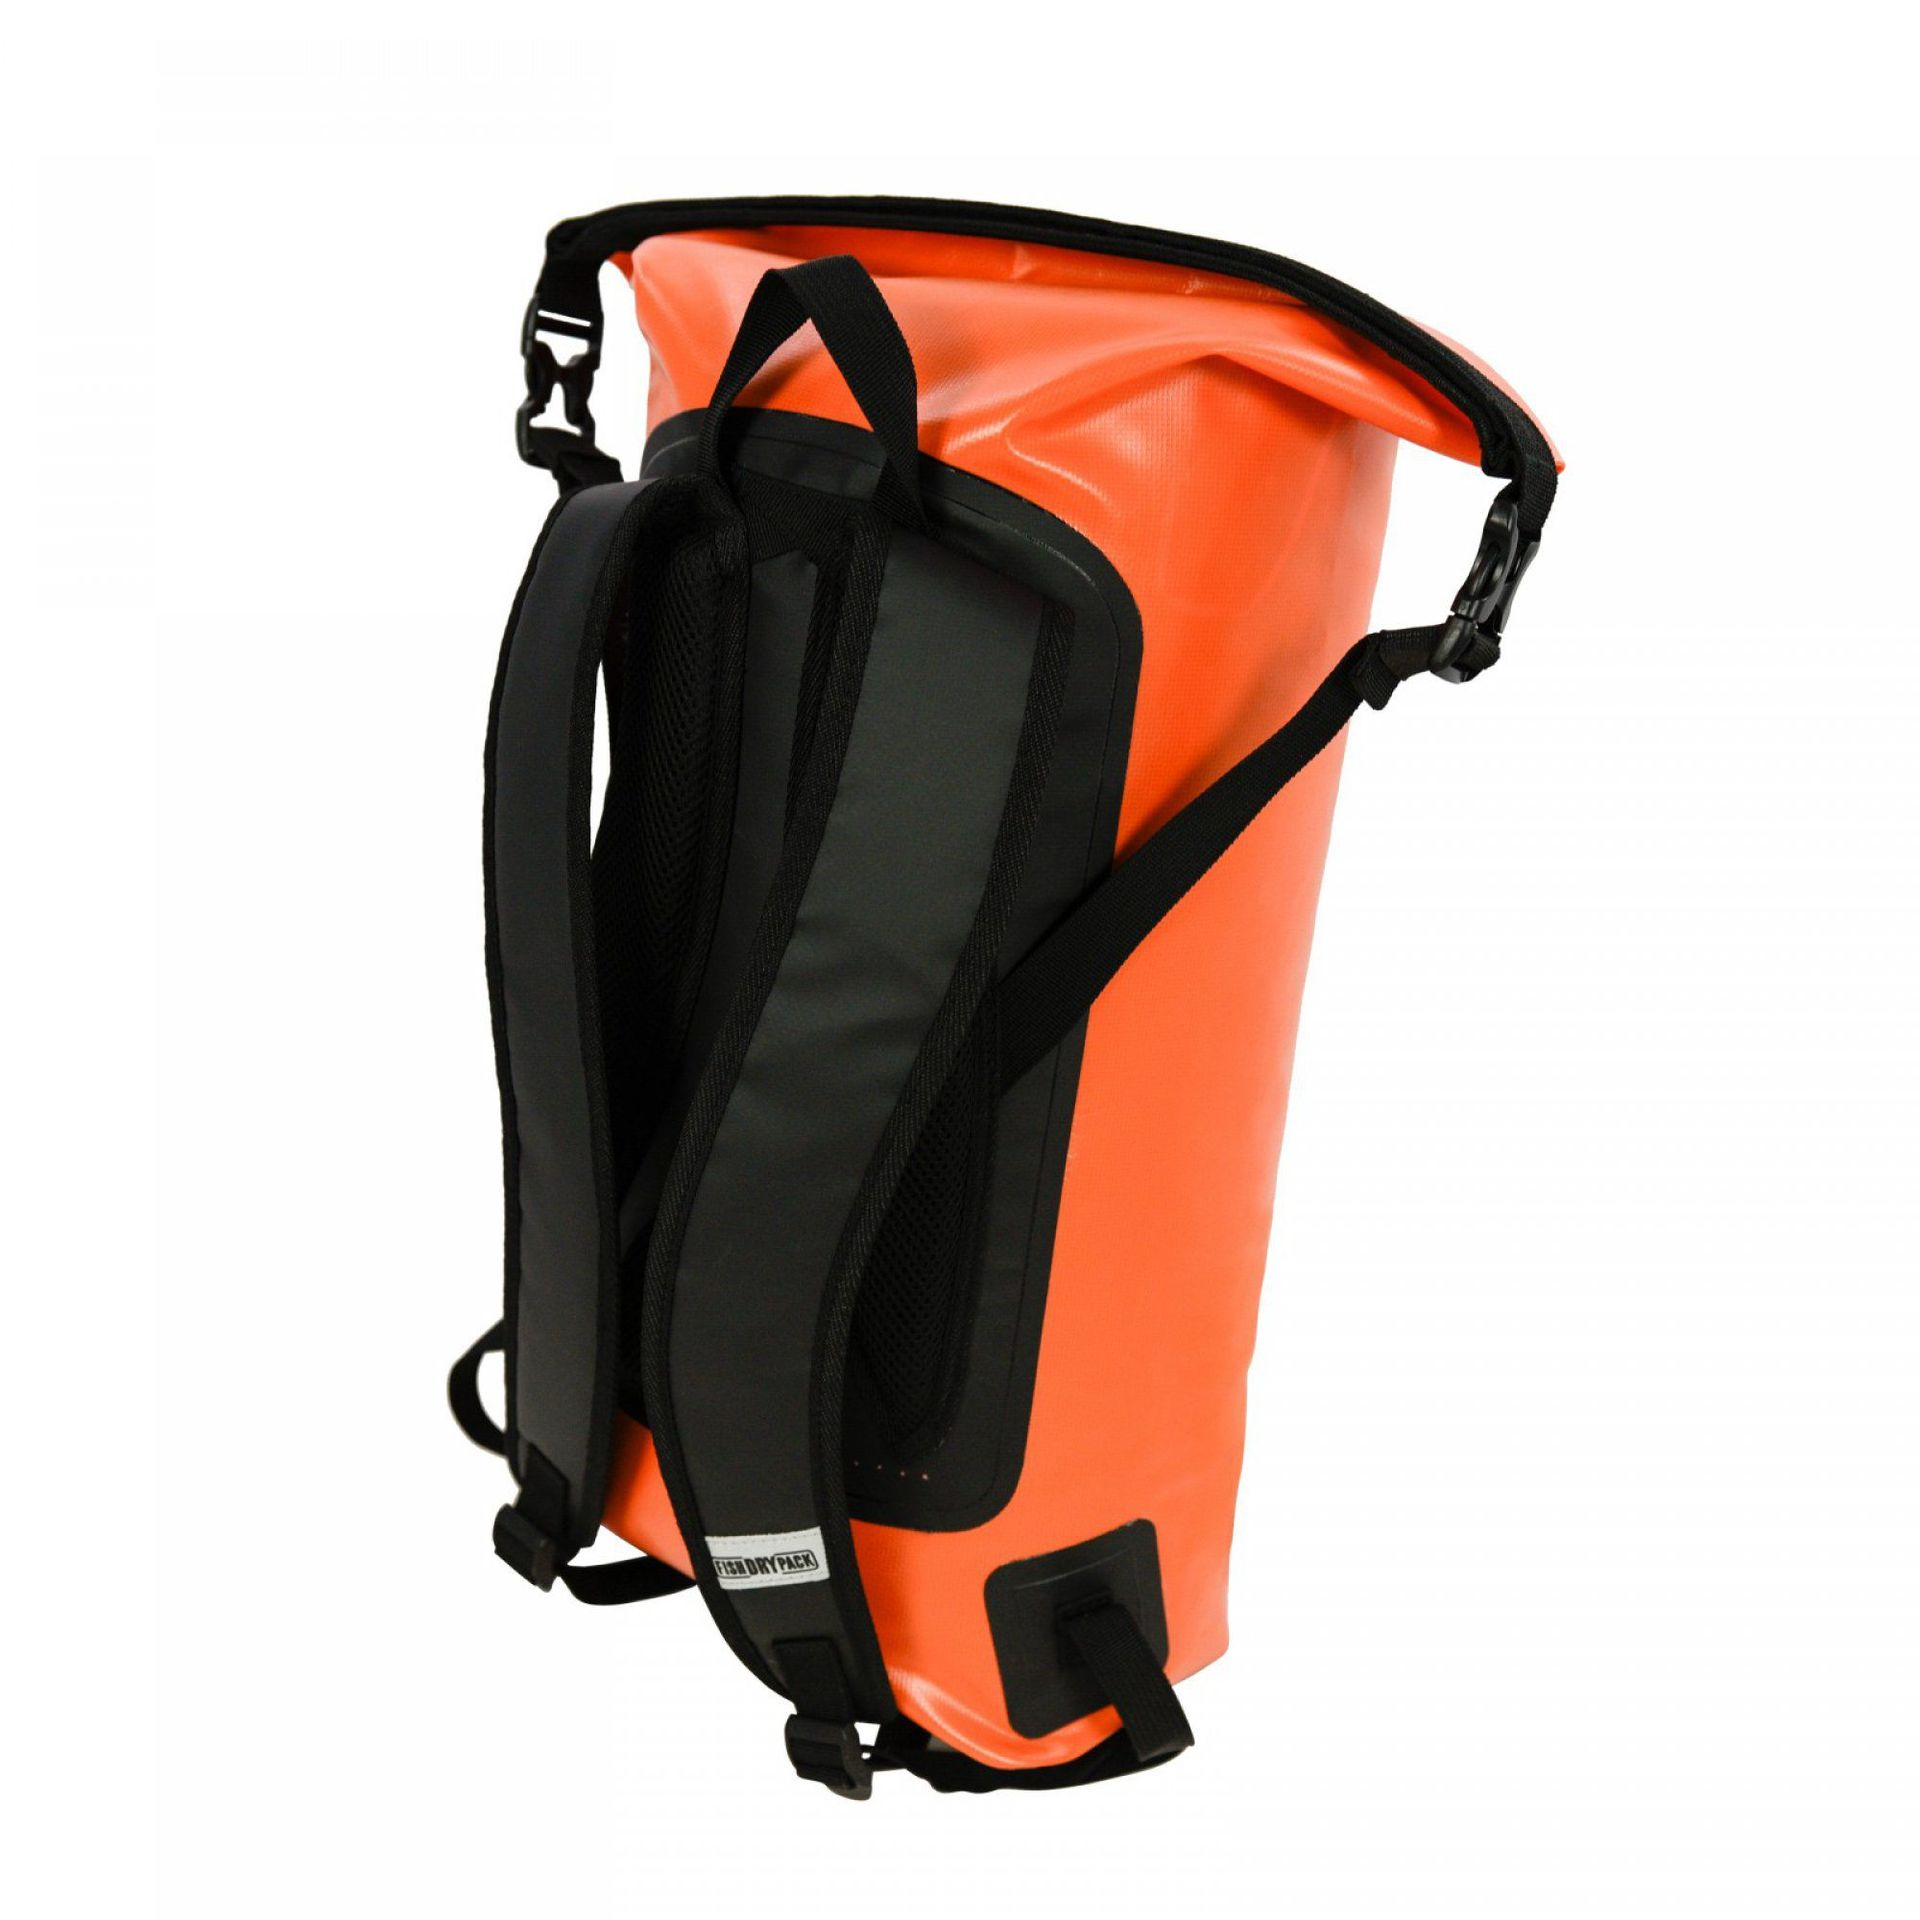 PLECAK FISH SKATEBOARDS FISH DRY PACK 18L ORANGE 3